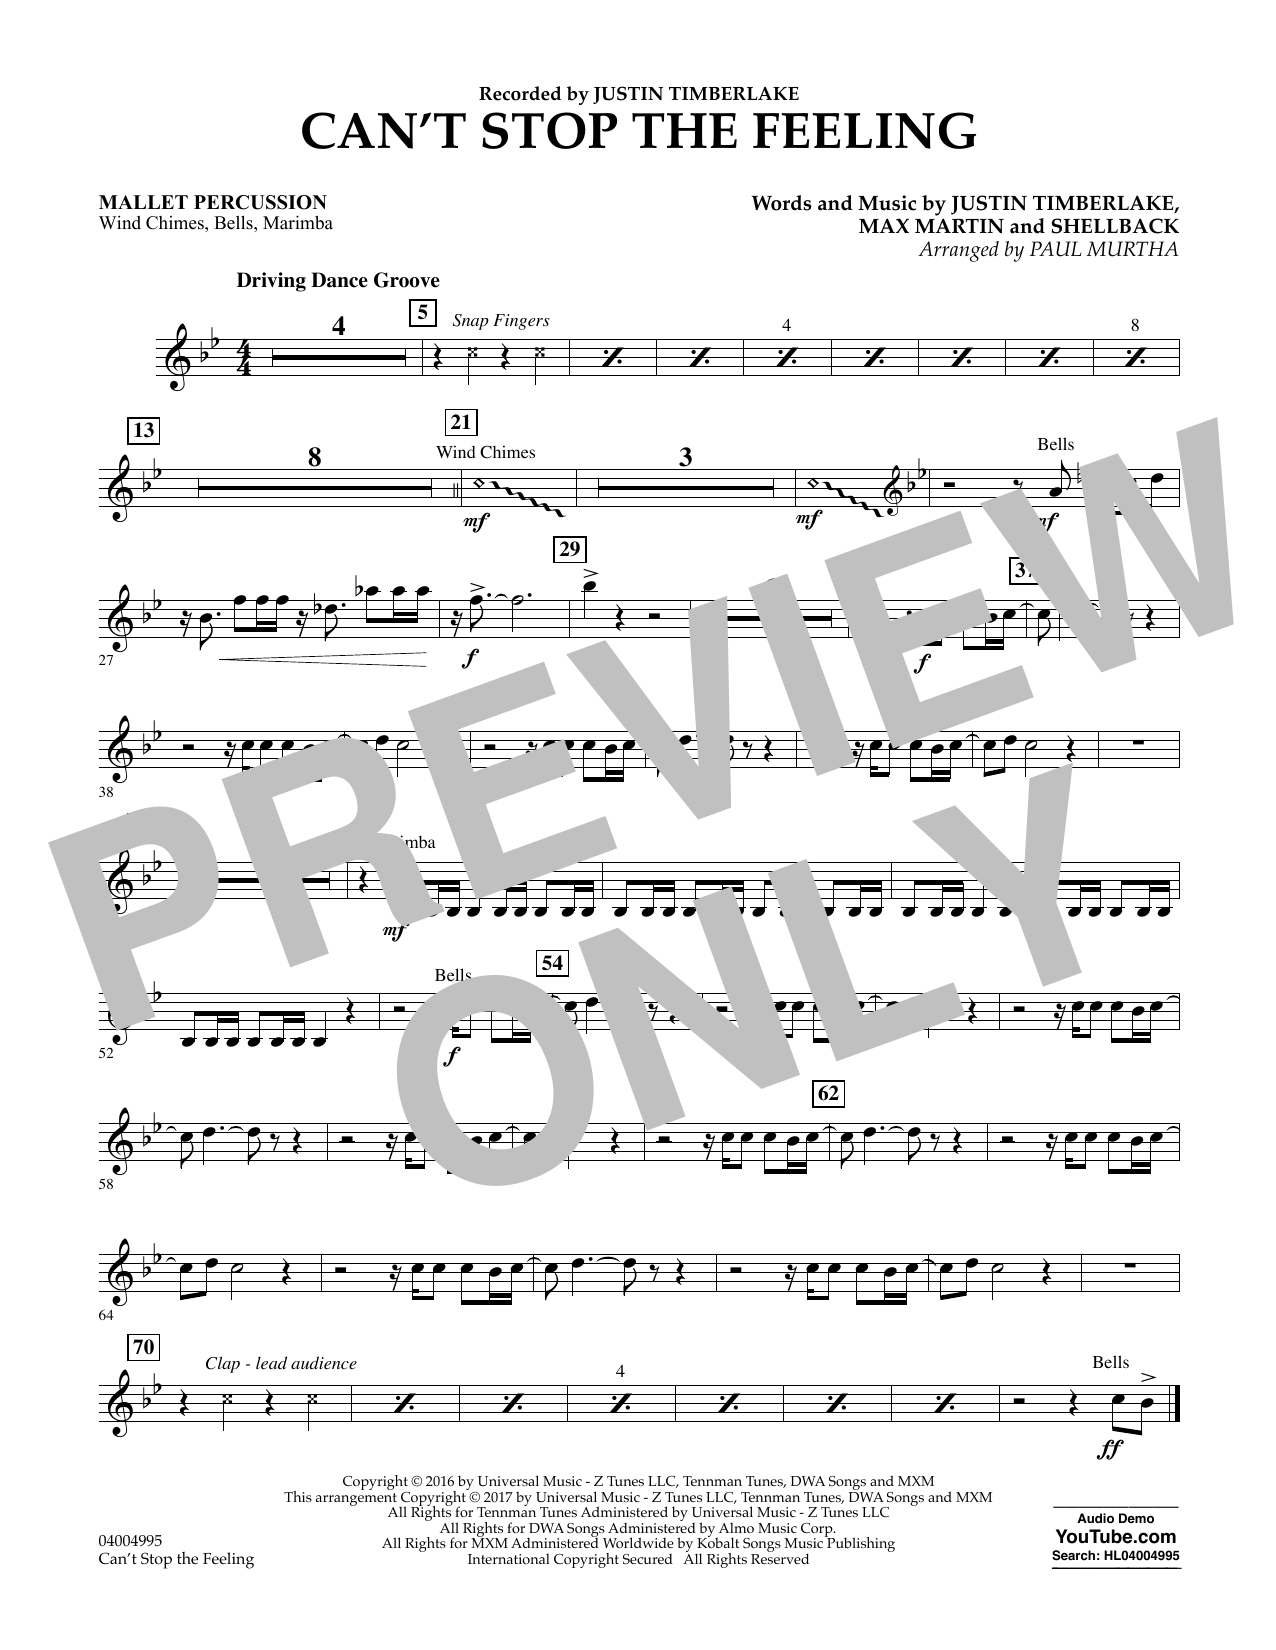 Can't Stop the Feeling - Mallet Percussion Sheet Music